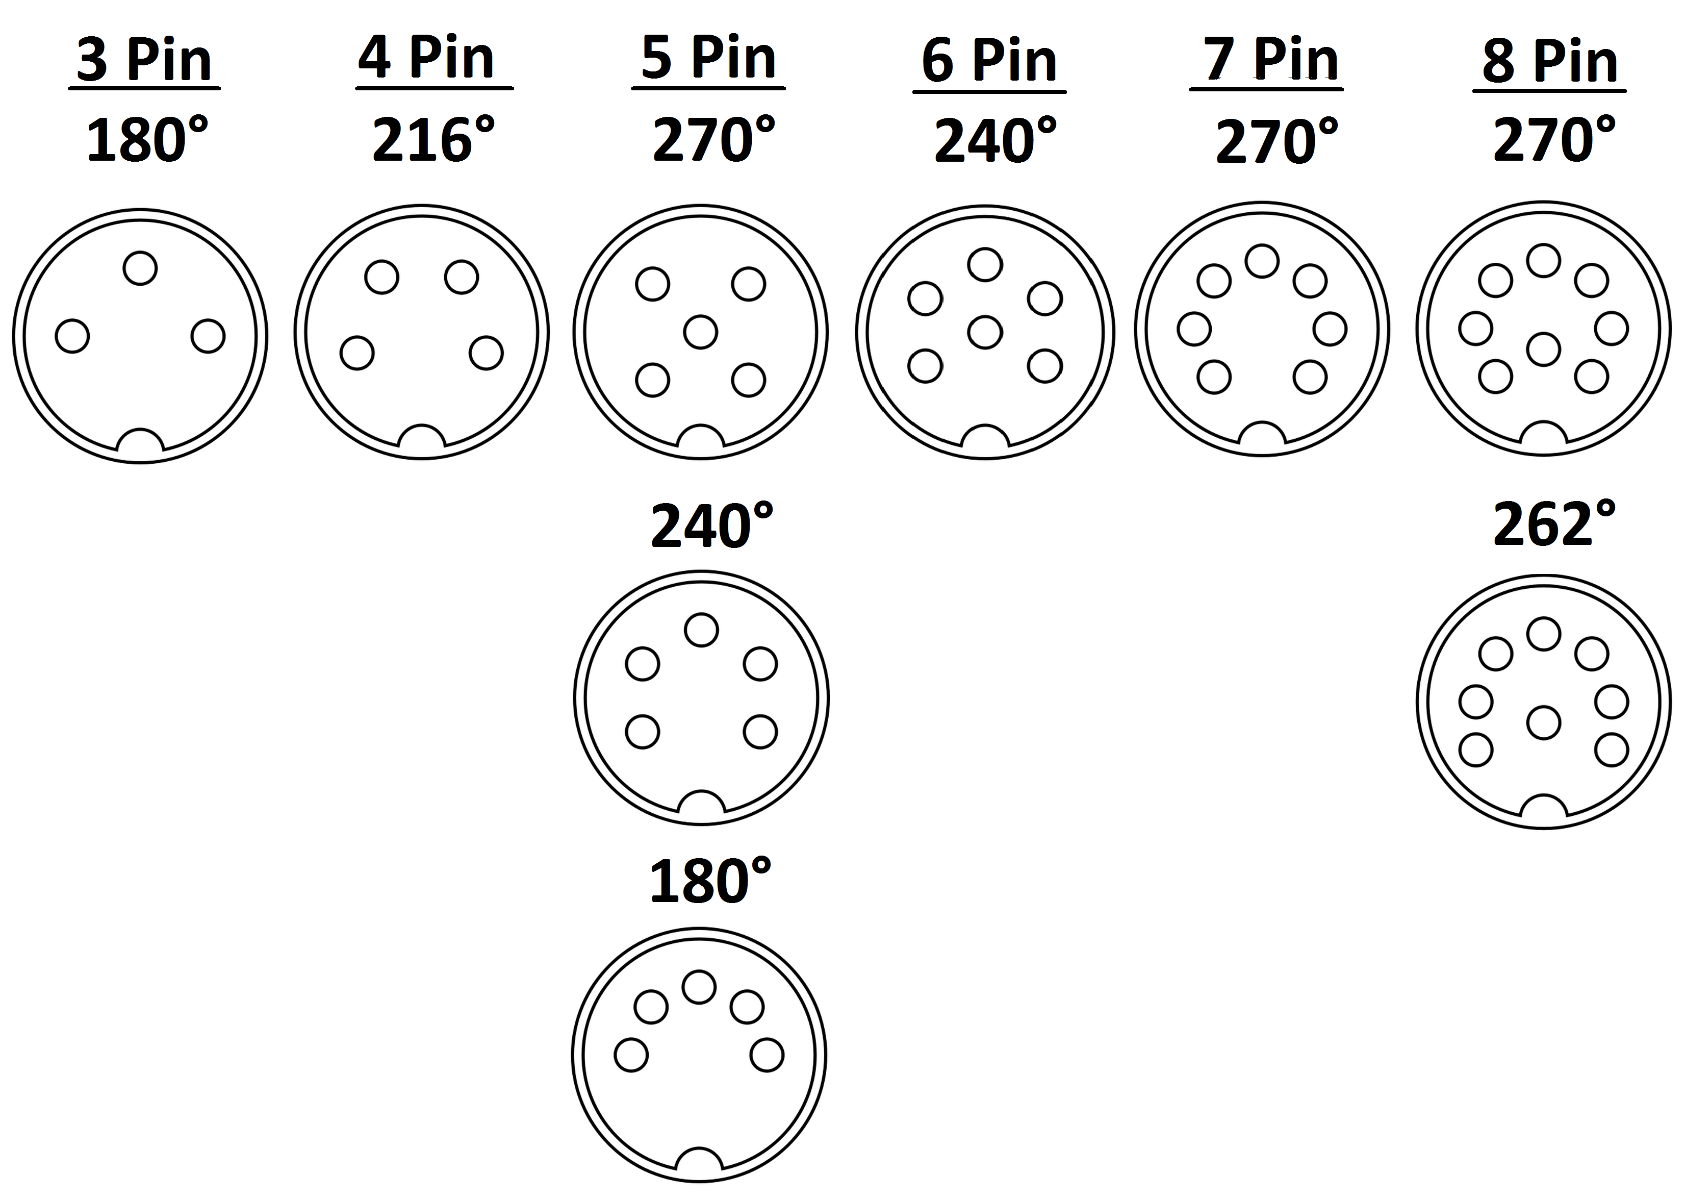 3 Pin Din Connector Wiring Diagram